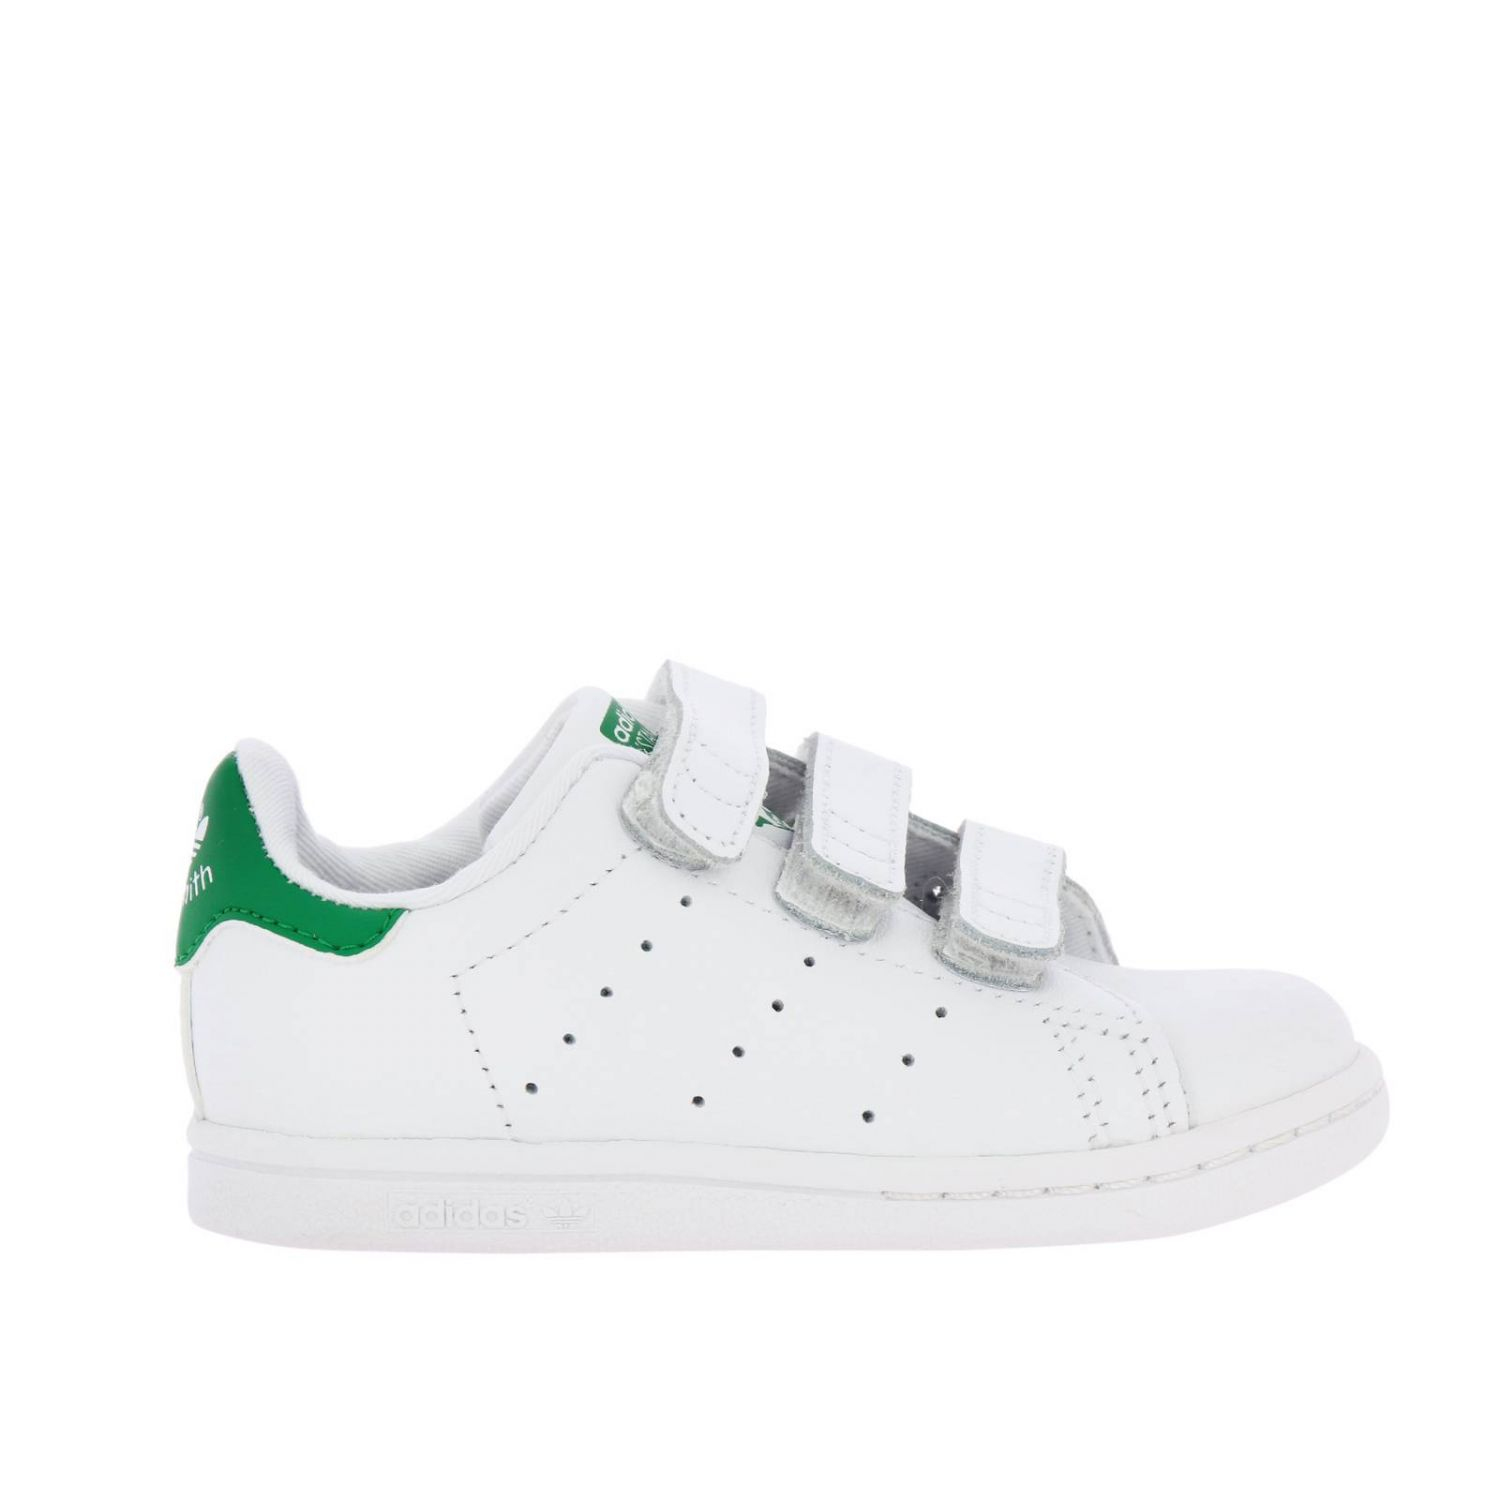 Stan Smith Adidas Originals Sneakers in smooth leather with colored heel white 1